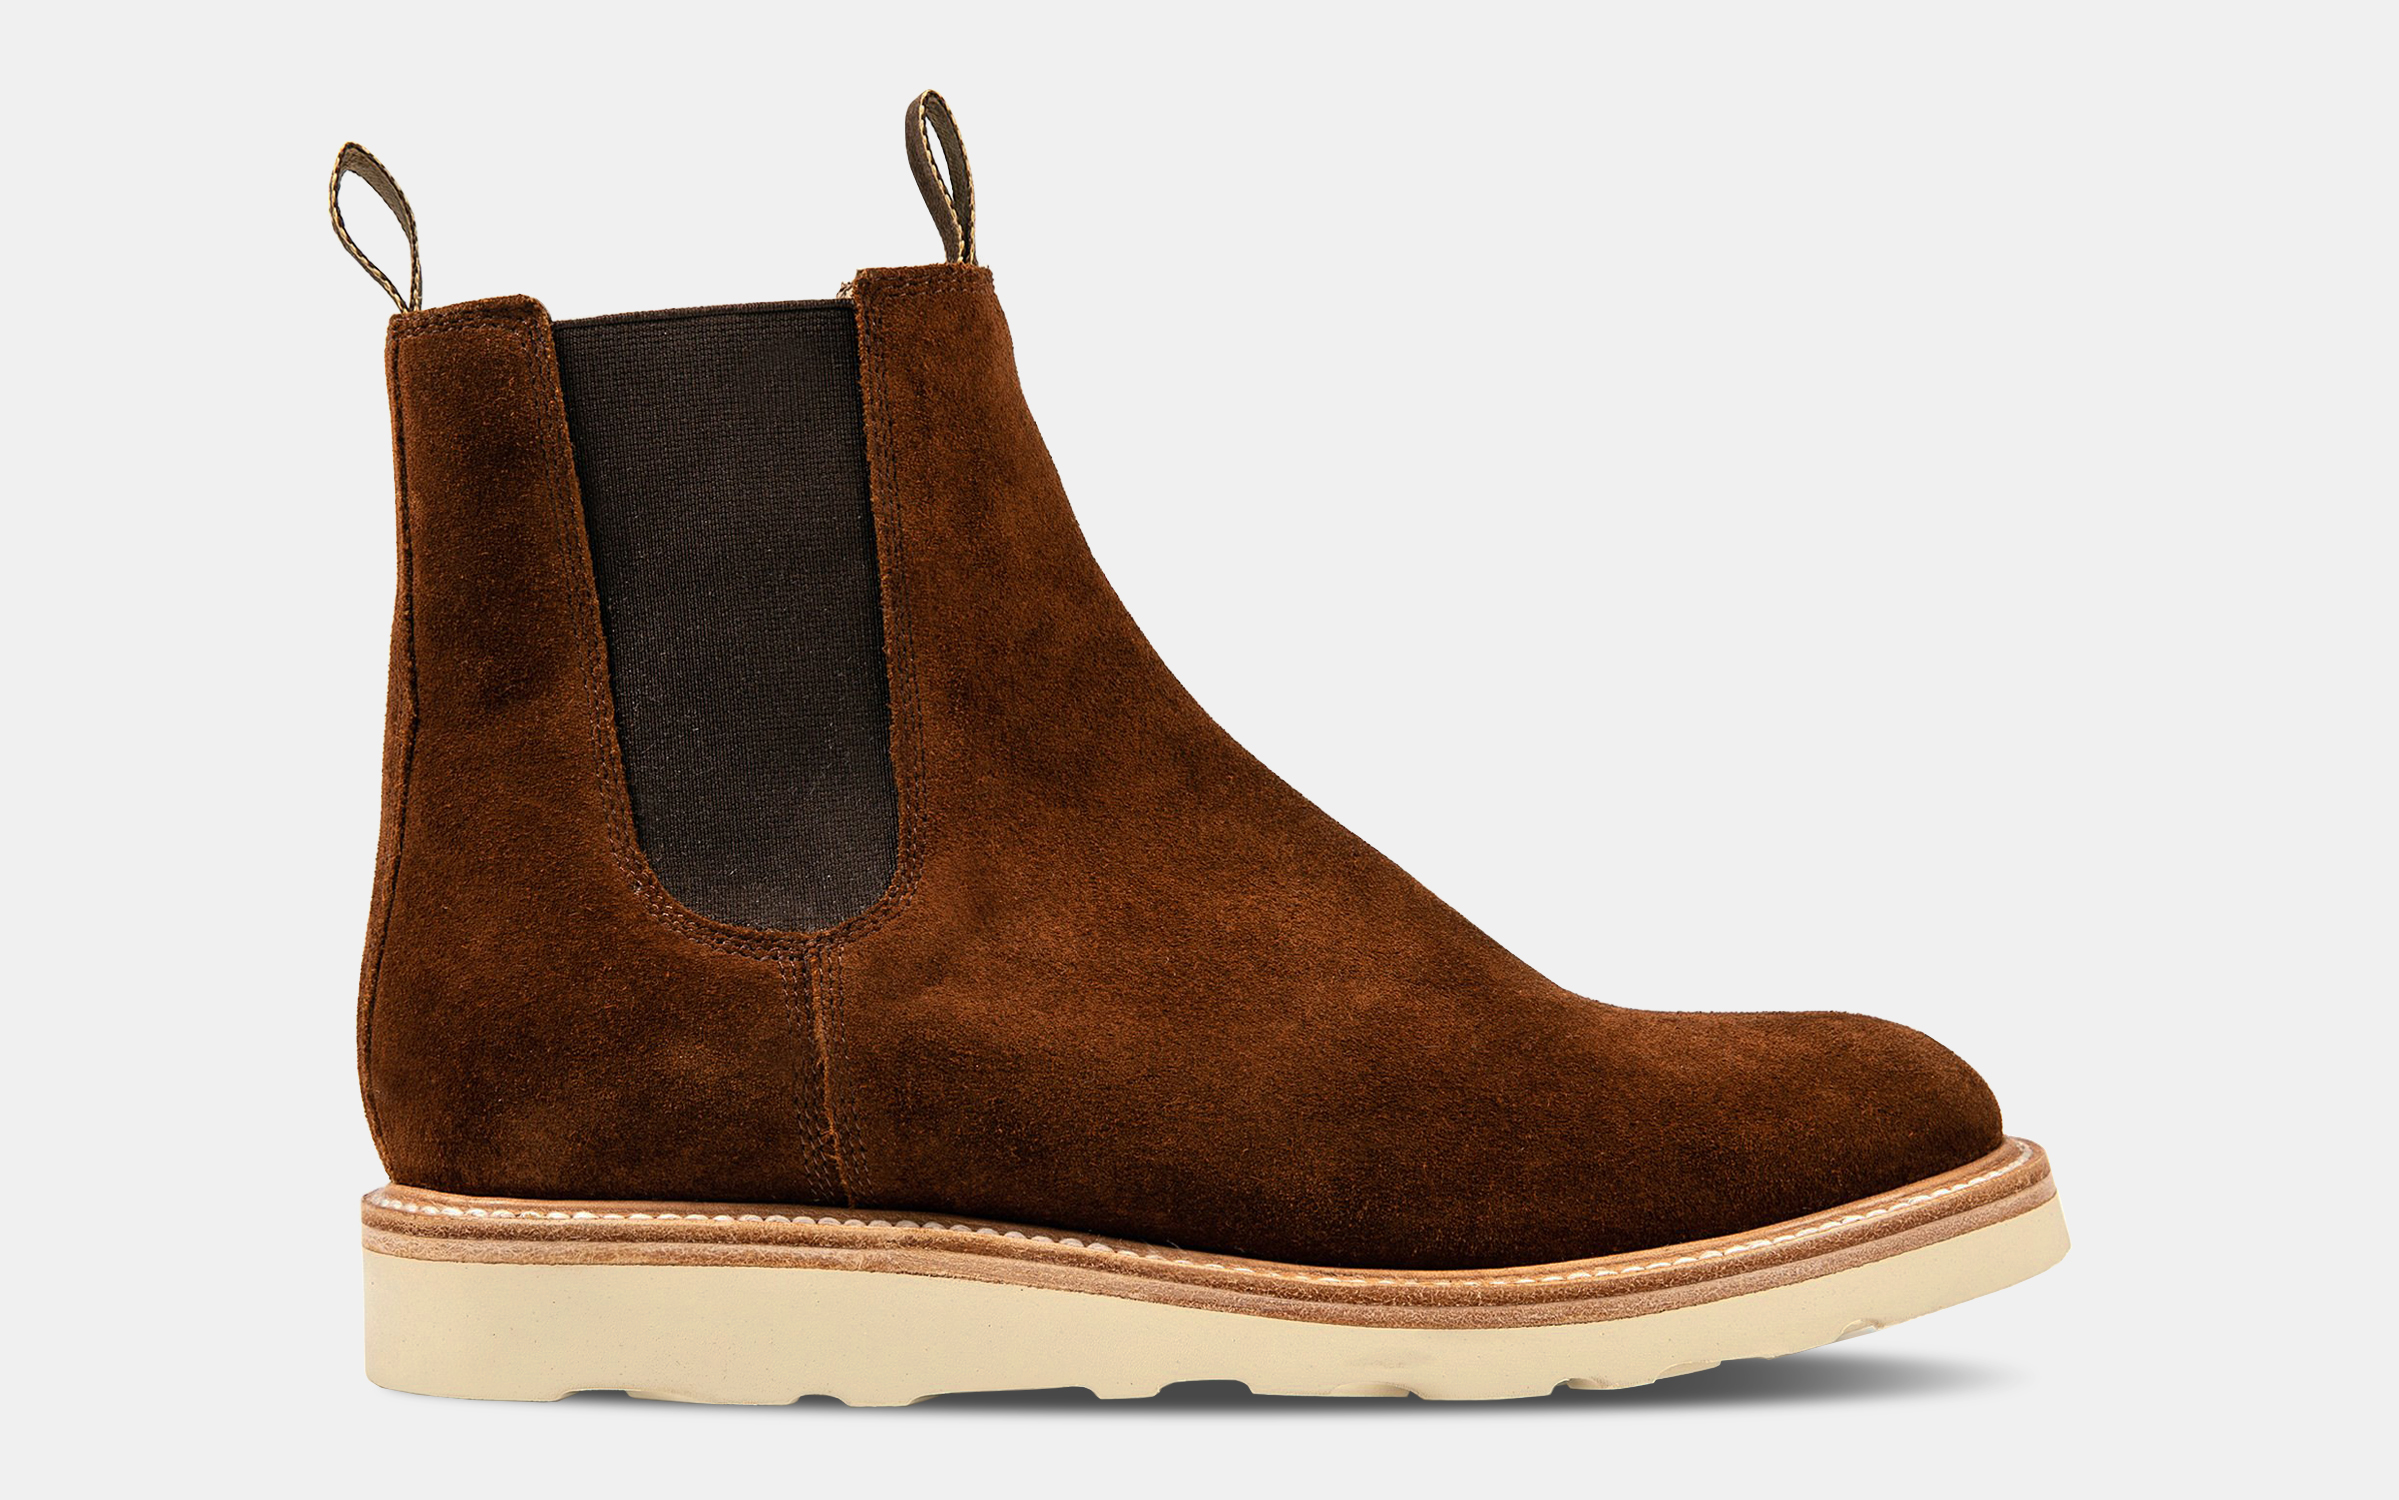 Taylor Stitch Ranch Boot in Weatherproof Snuff Suede